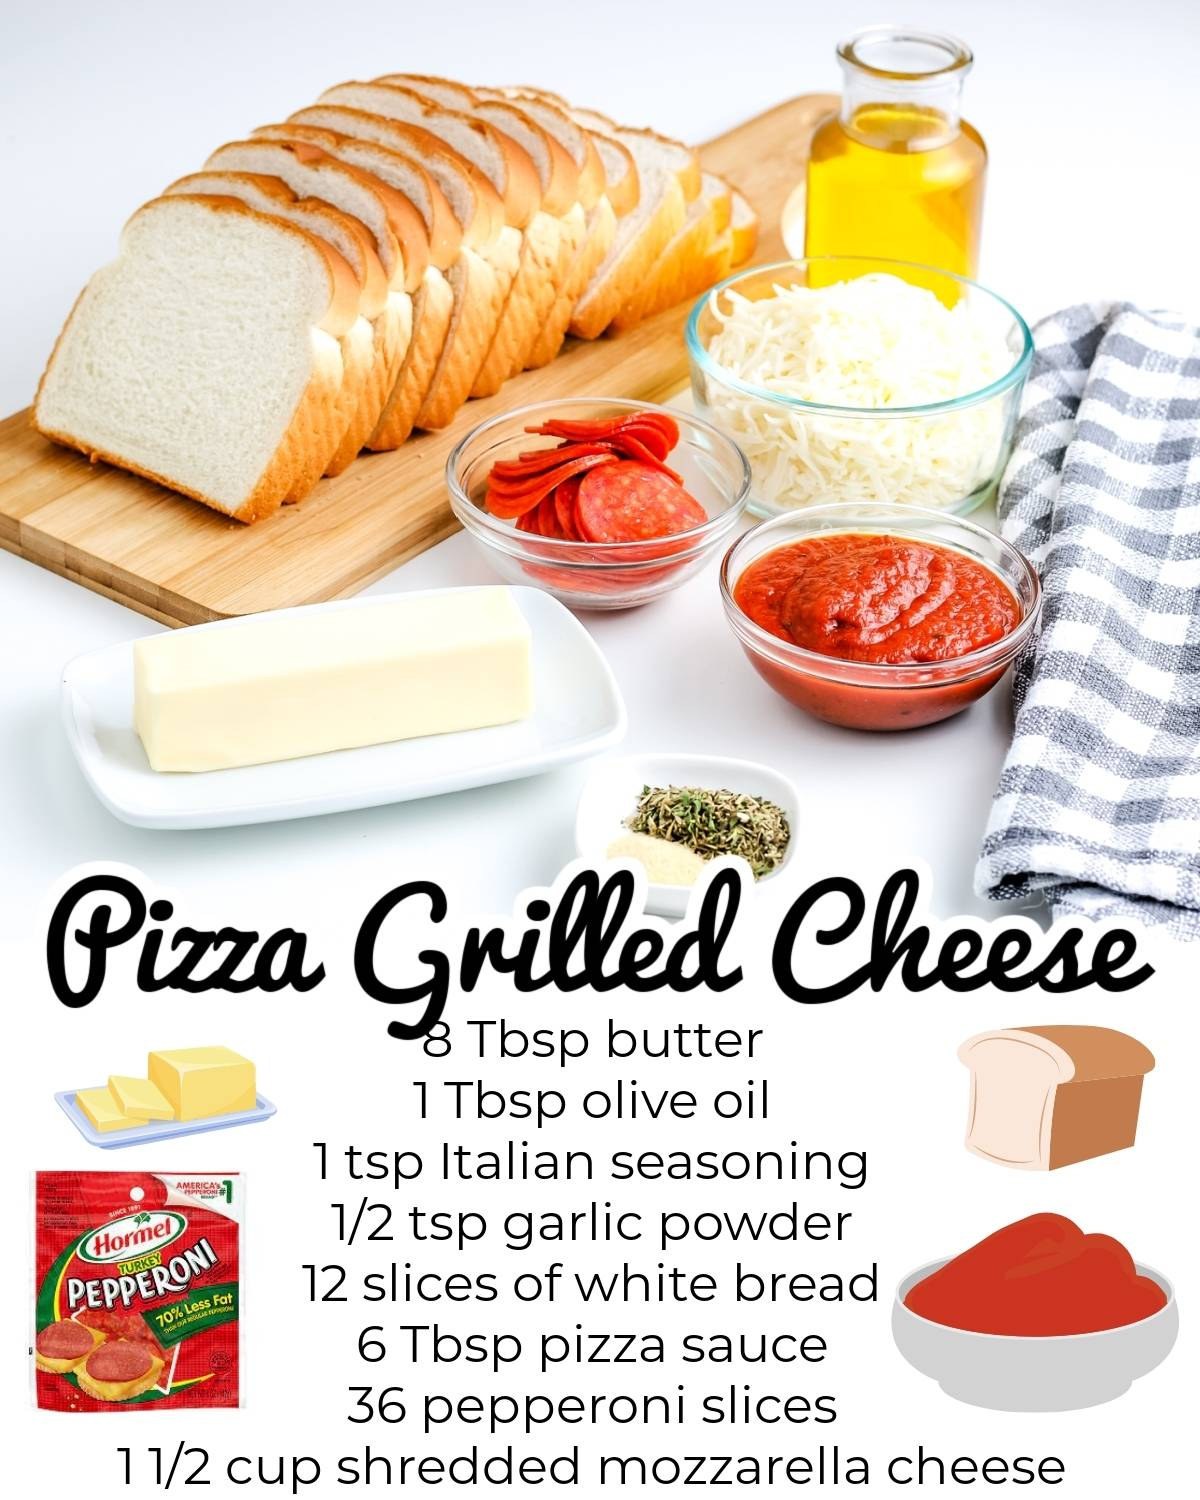 All of the ingredients needed to make this Pizza Grilled Cheese recipe.